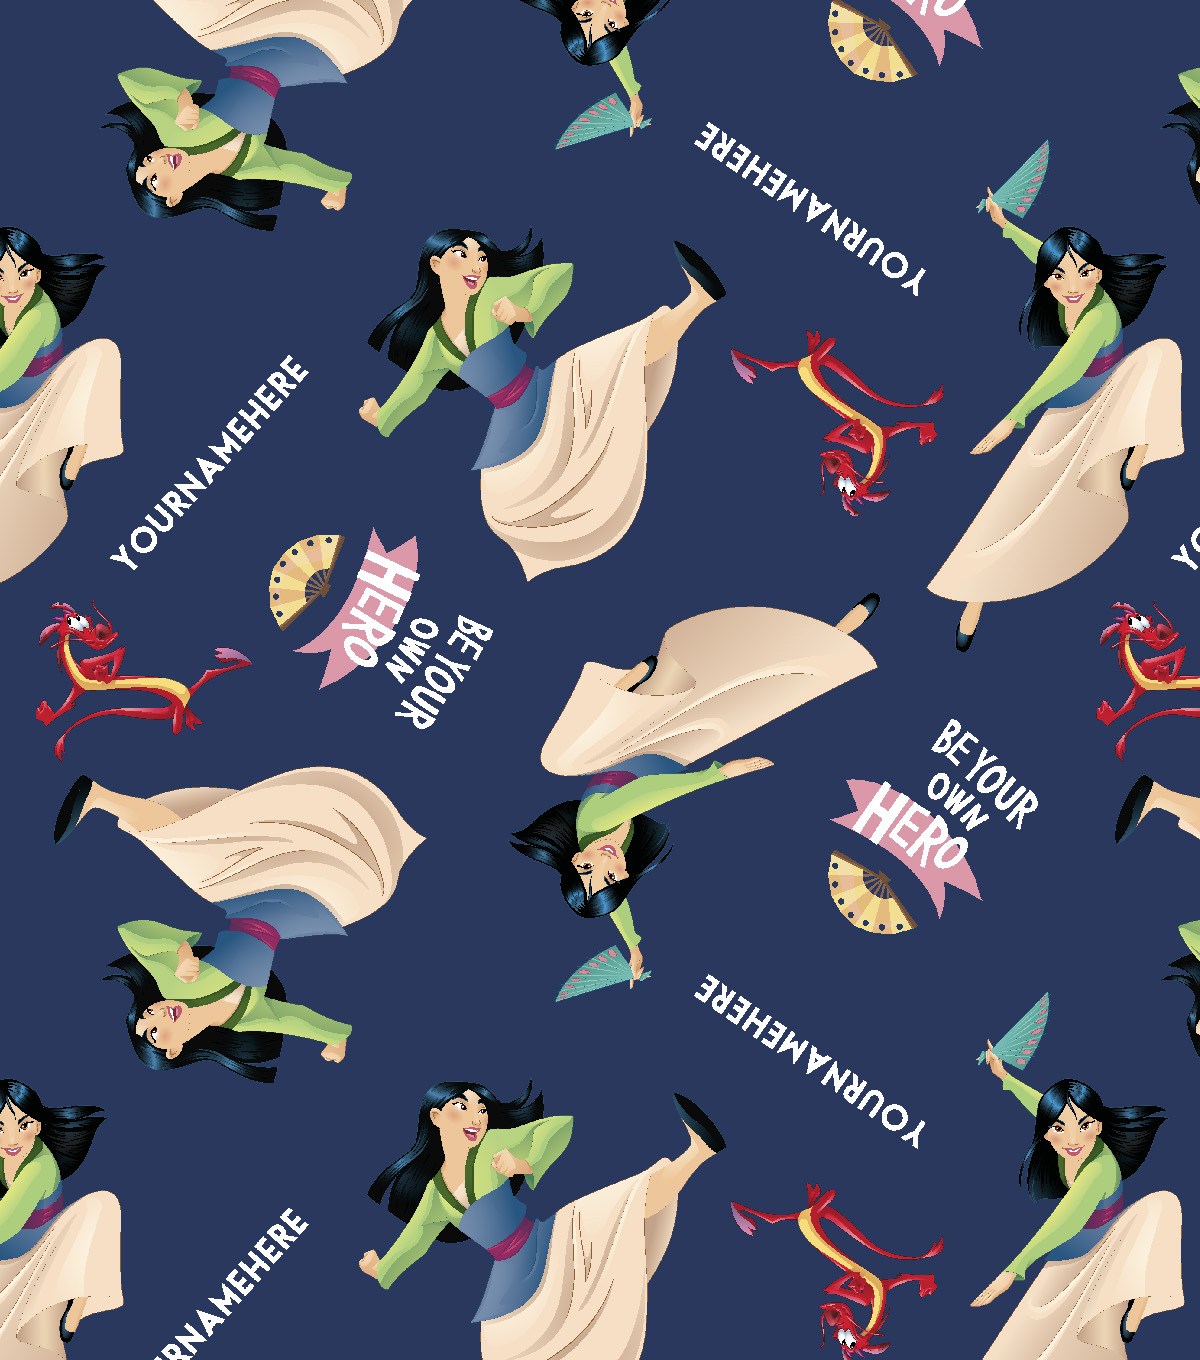 Disney Mulan Print Fabric by Springs Creative-Be Your Own Hero